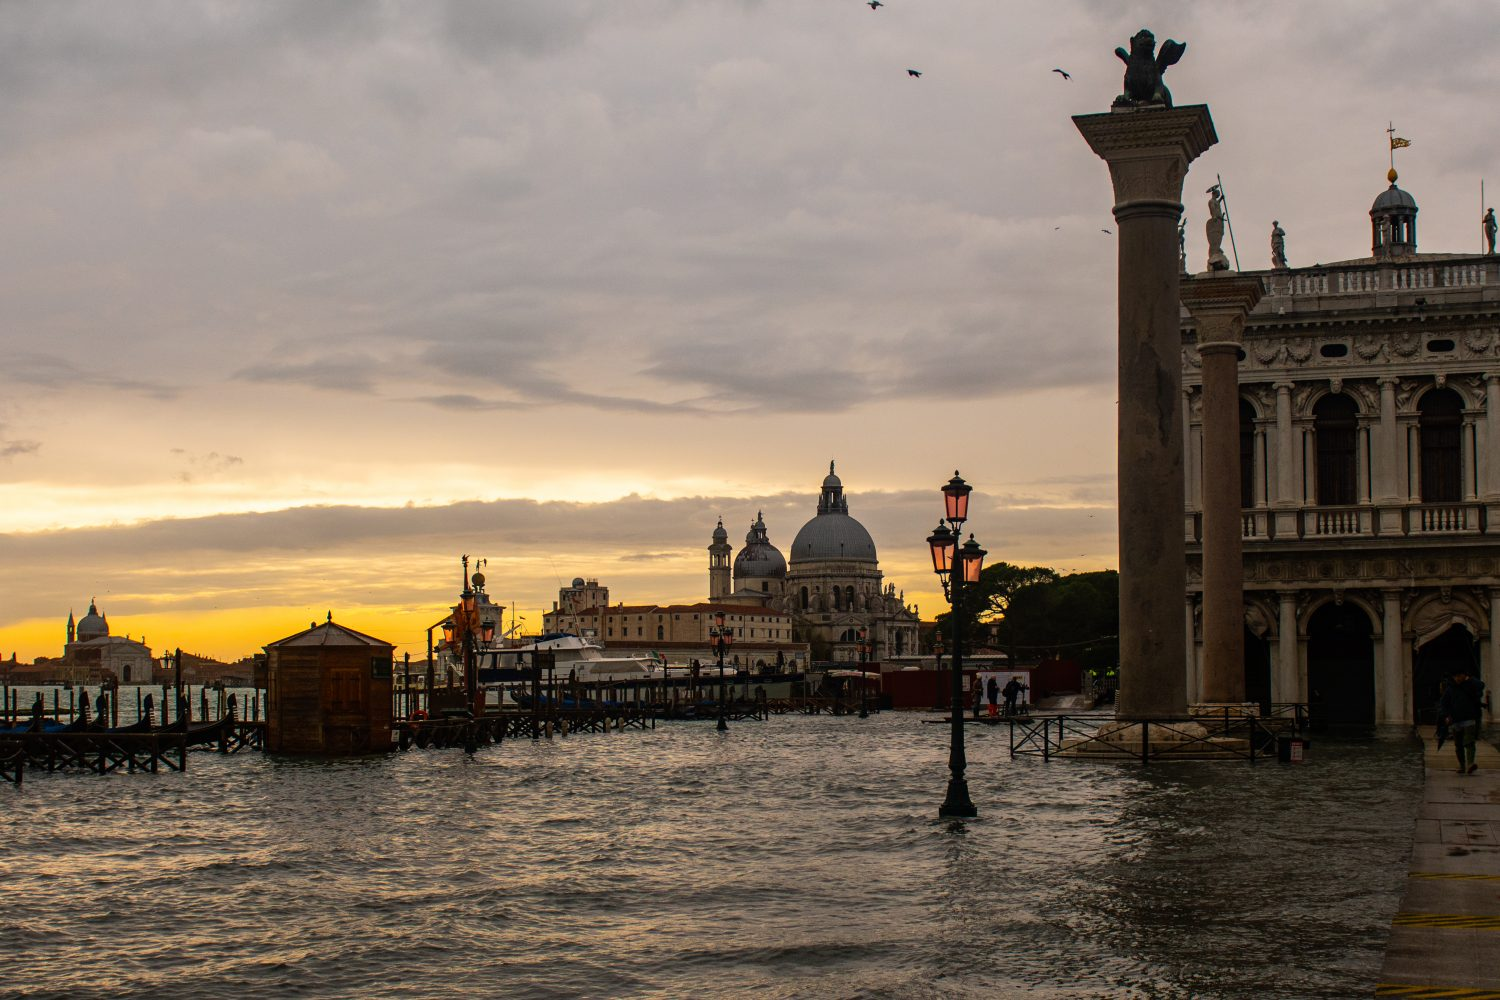 Historical High Tide in Venice – Aqua Granda and Aqua Grandissima